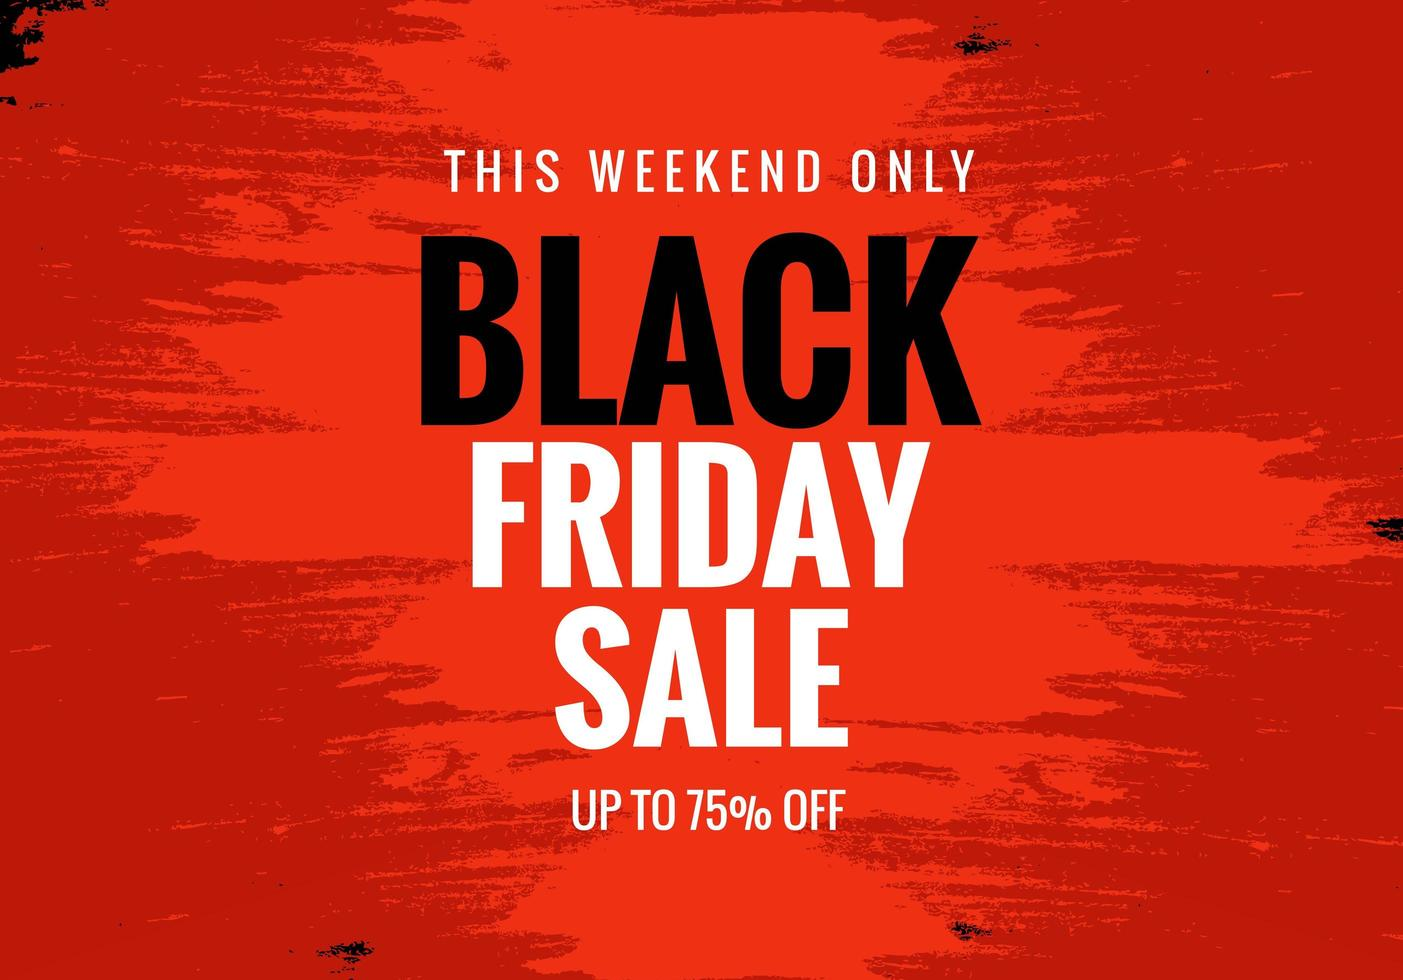 Black Friday Sale for Poster Banner Layout Background vector